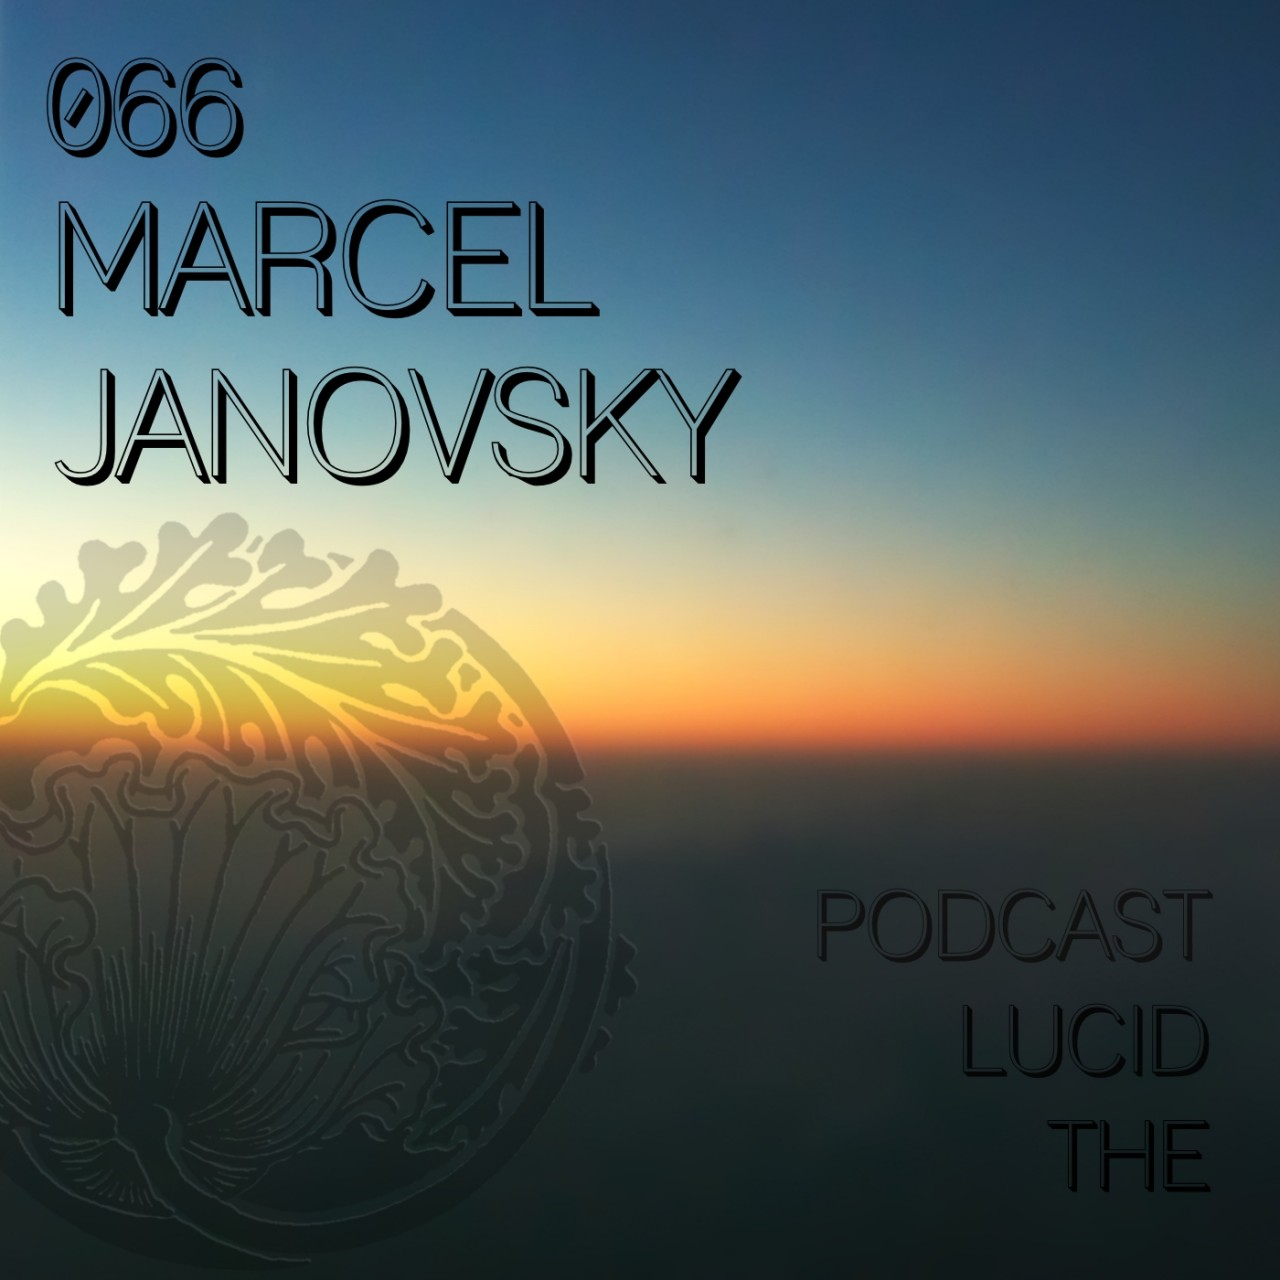 The Lucid Podcast 066 Marcel Janovsky